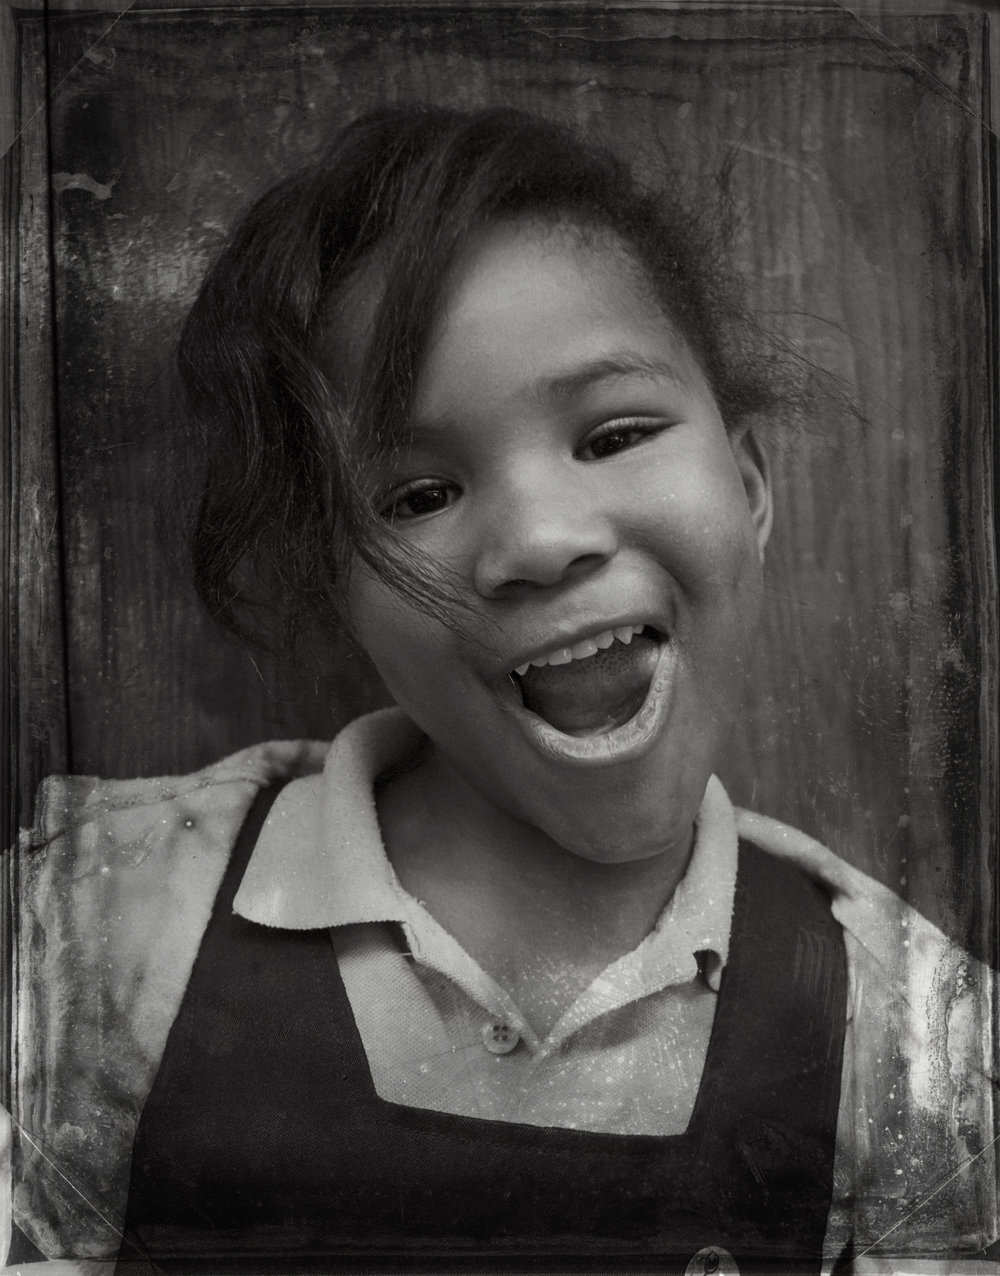 PORTRAITS | Girl in Overalls, Chicago